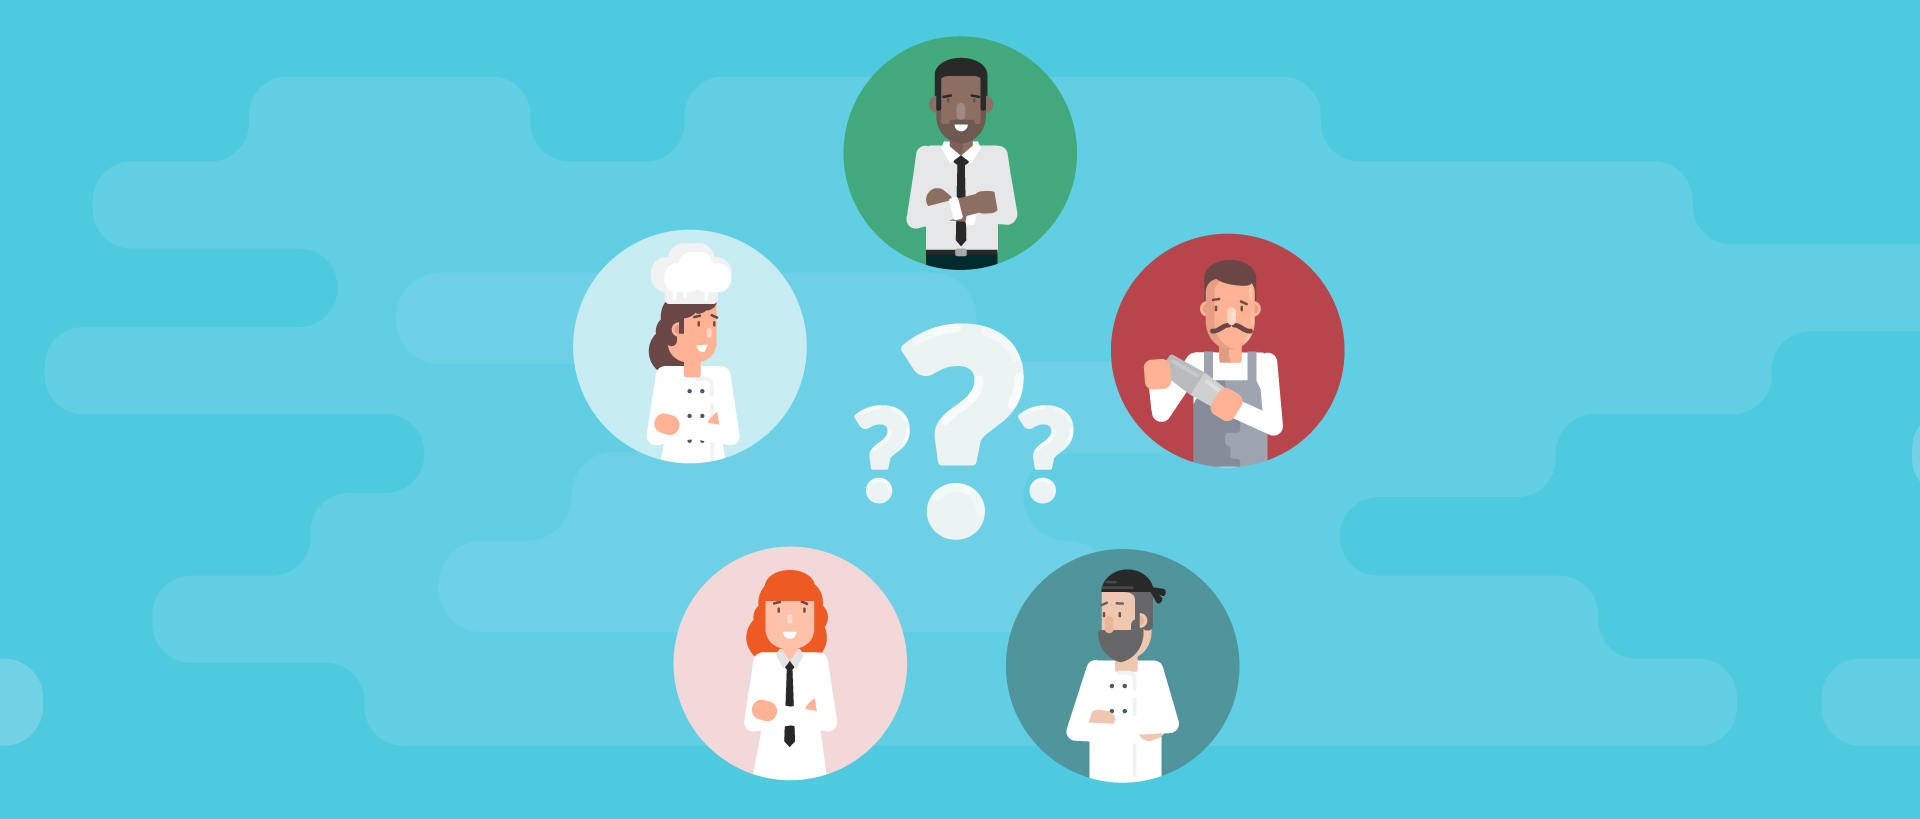 How to Conduct Effective Restaurant Interviews: 40+ Sample Questions for Every Position